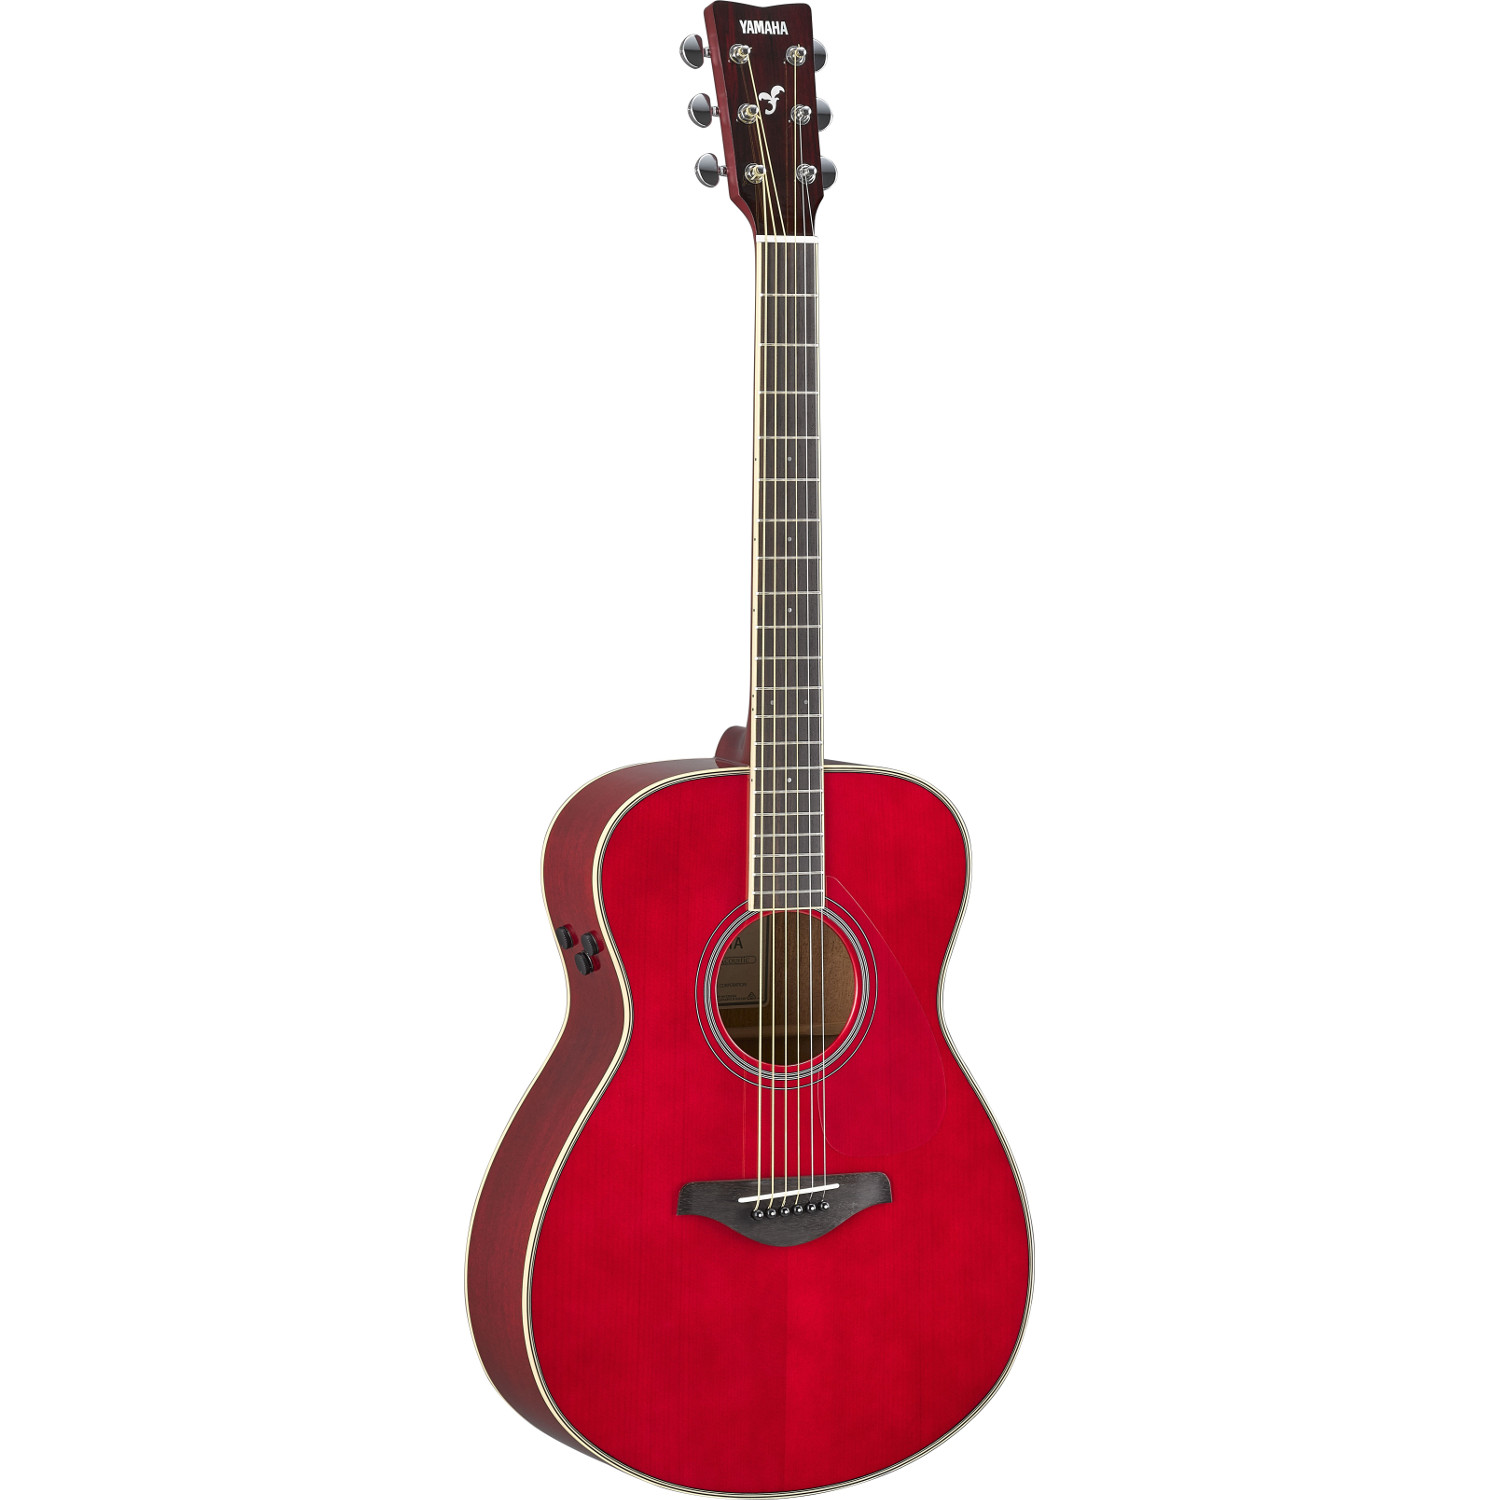 Yamaha FS TA TransAcoustic Ruby Red electro acoustic guitar